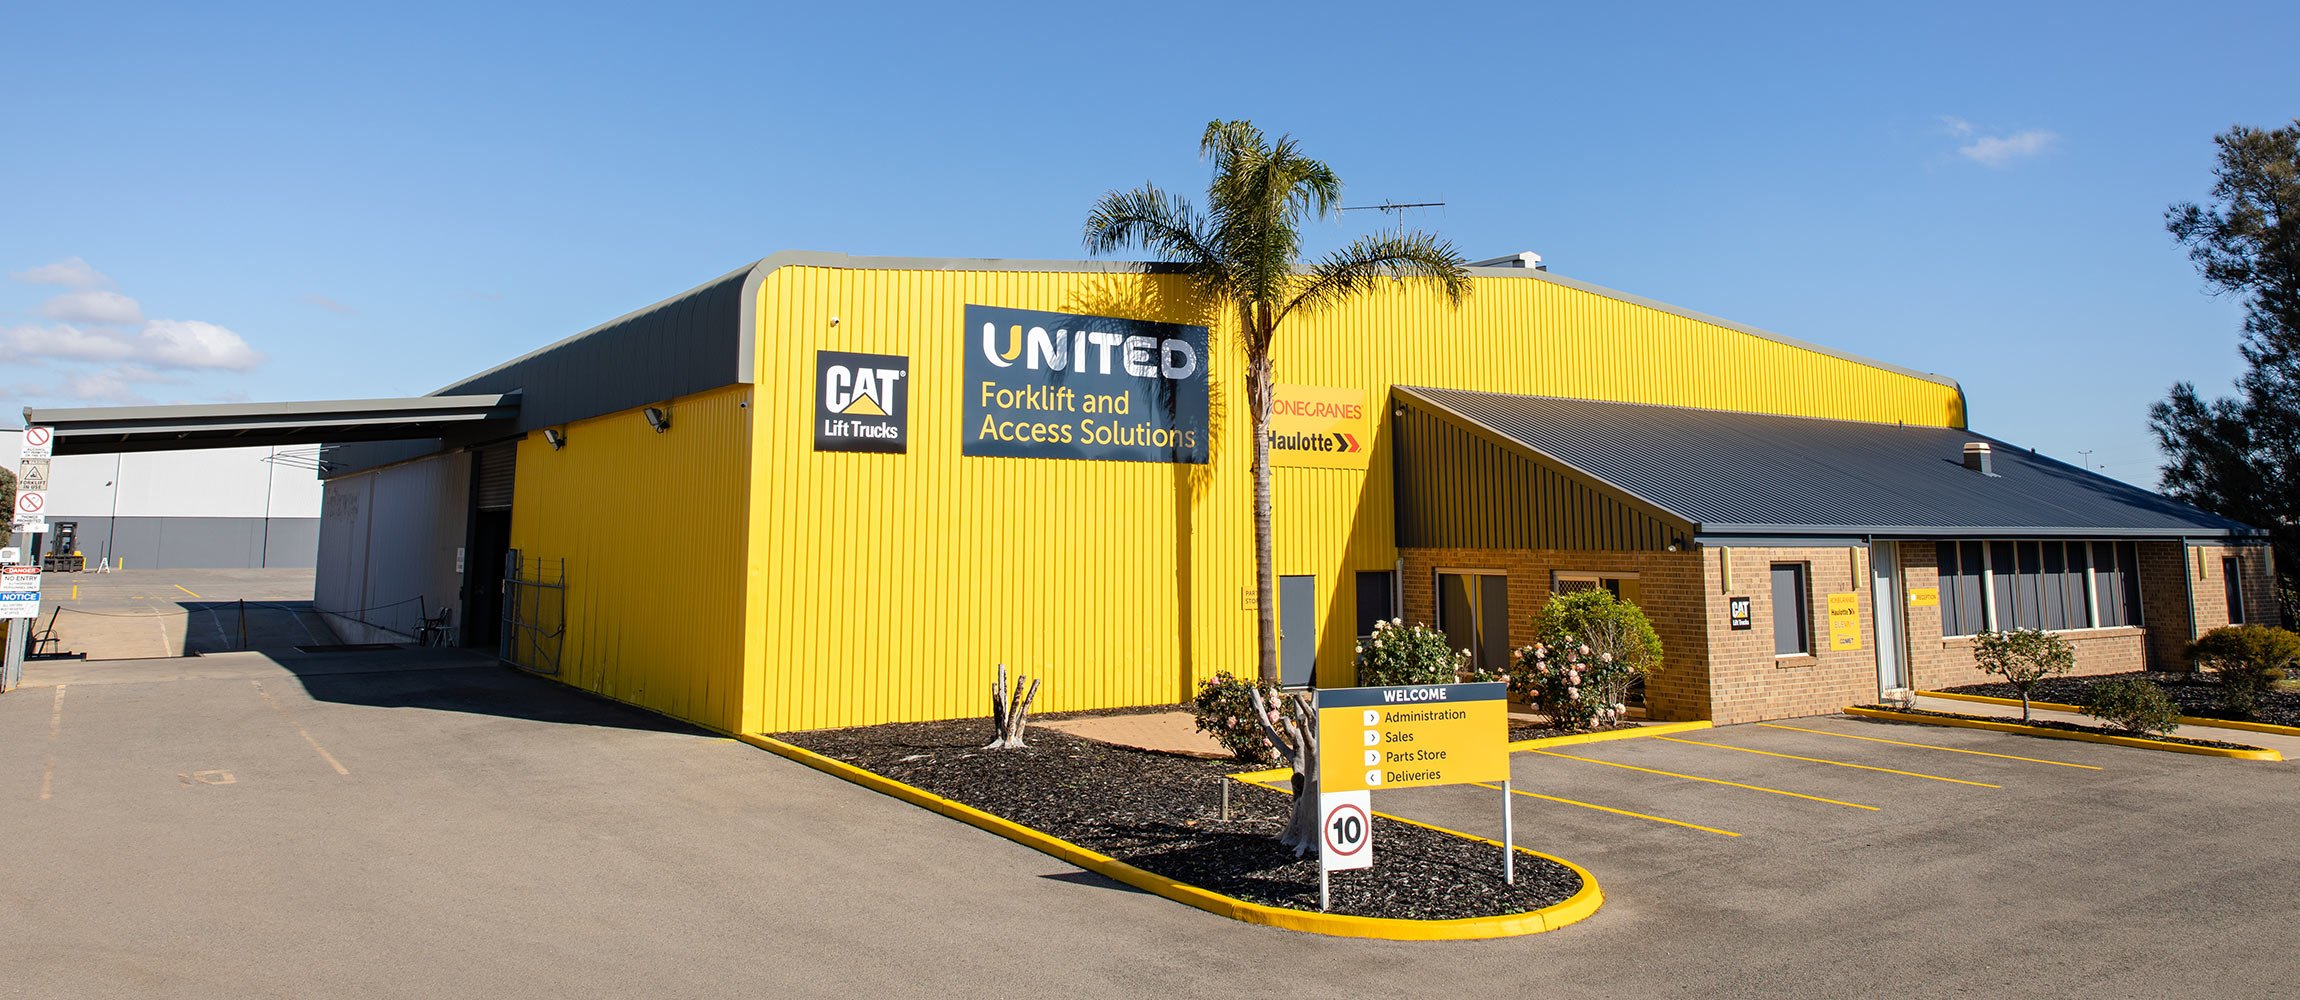 United Adelaide Branch